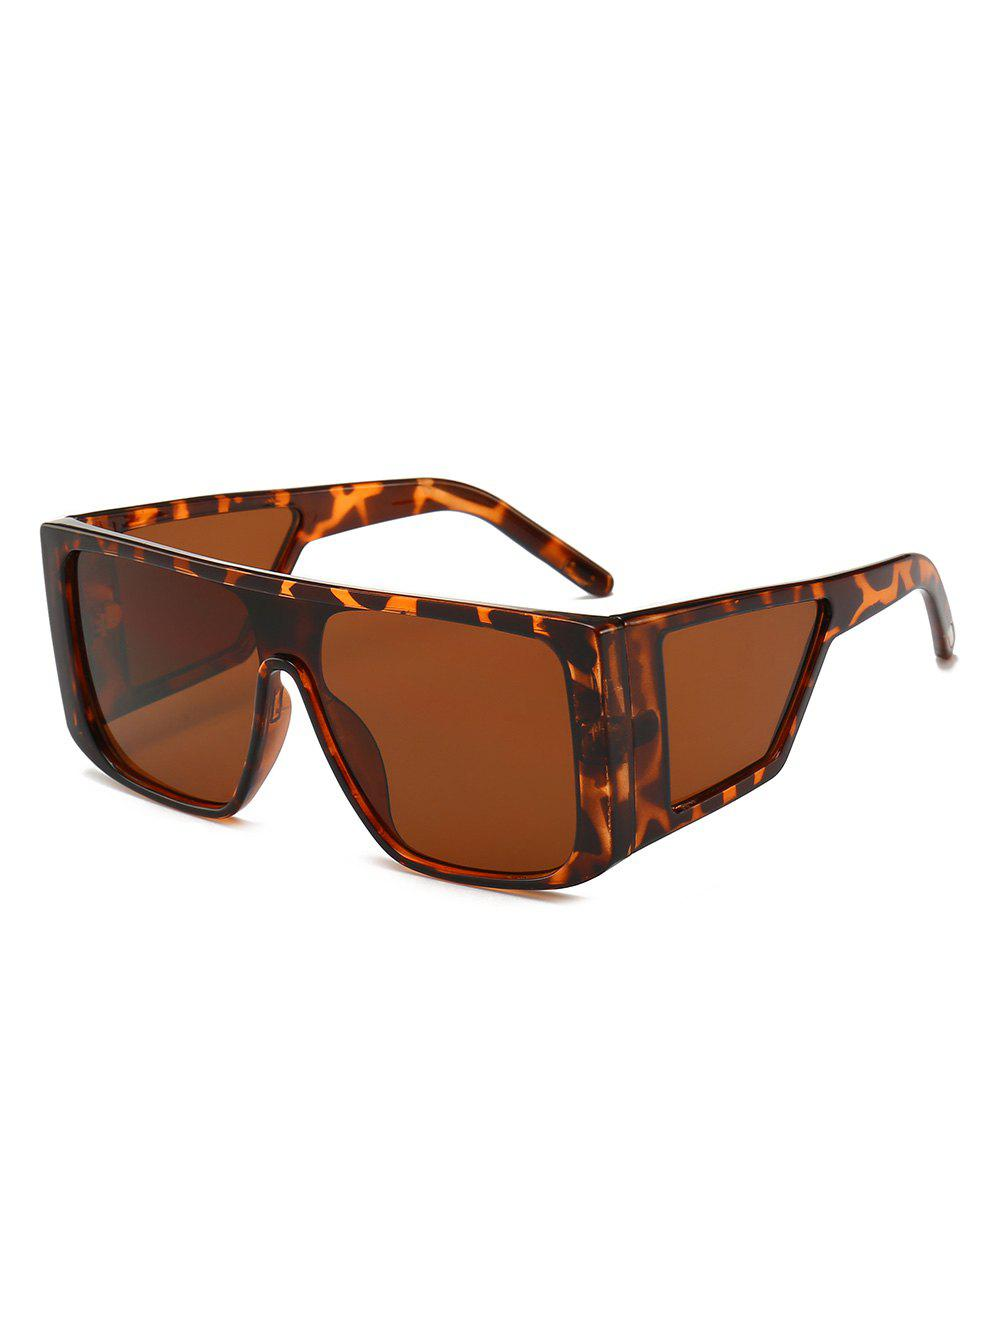 New Integrated Lens Square Frame PC Sunglasses